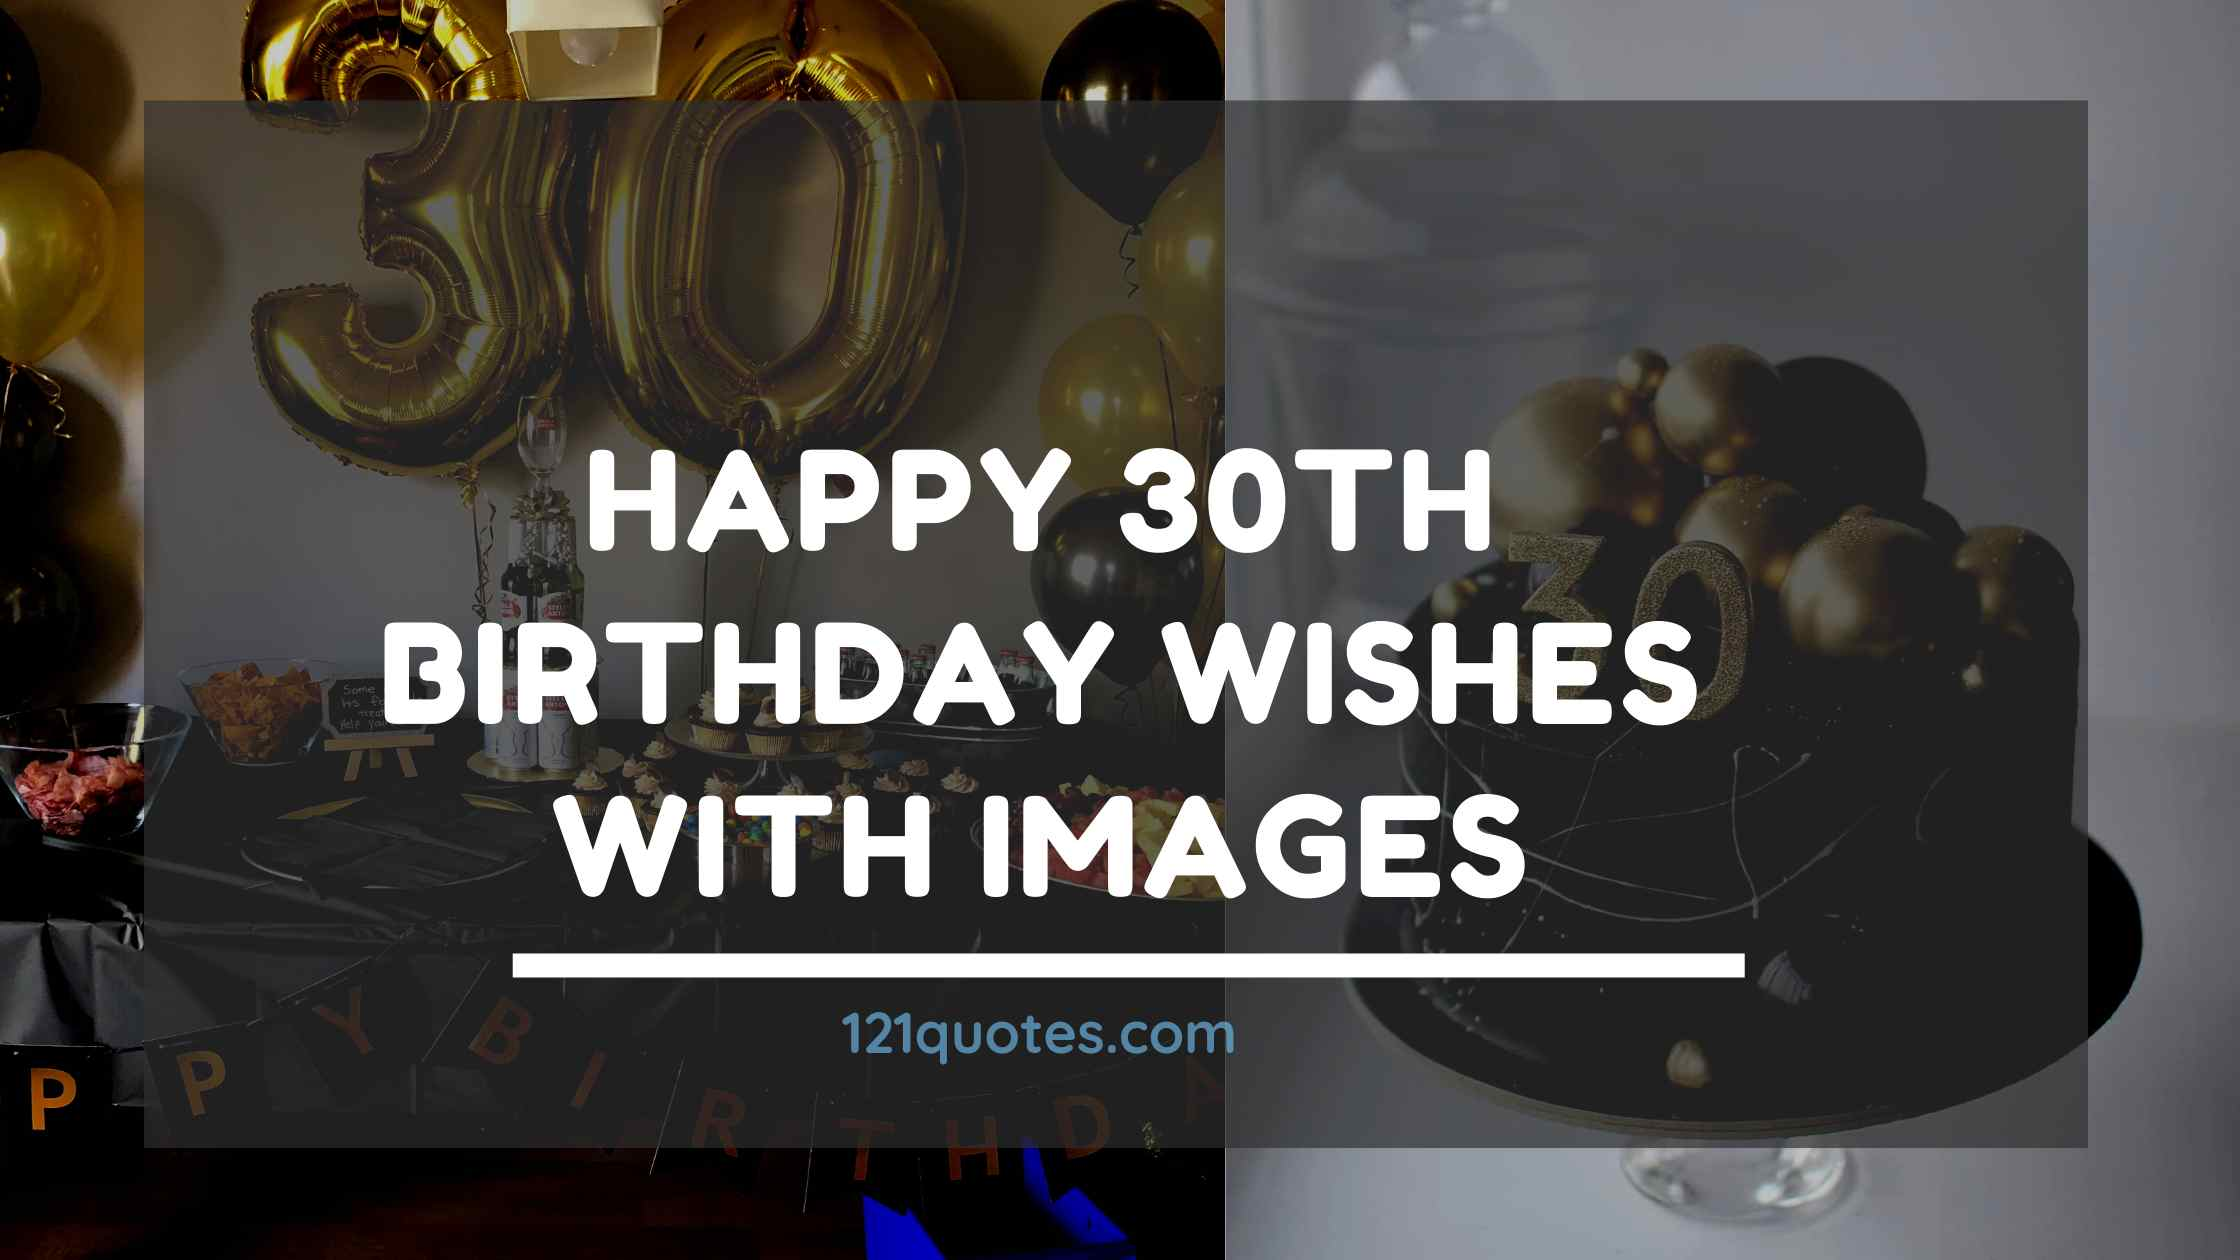 Happy 30th Birthday Wishes with Images